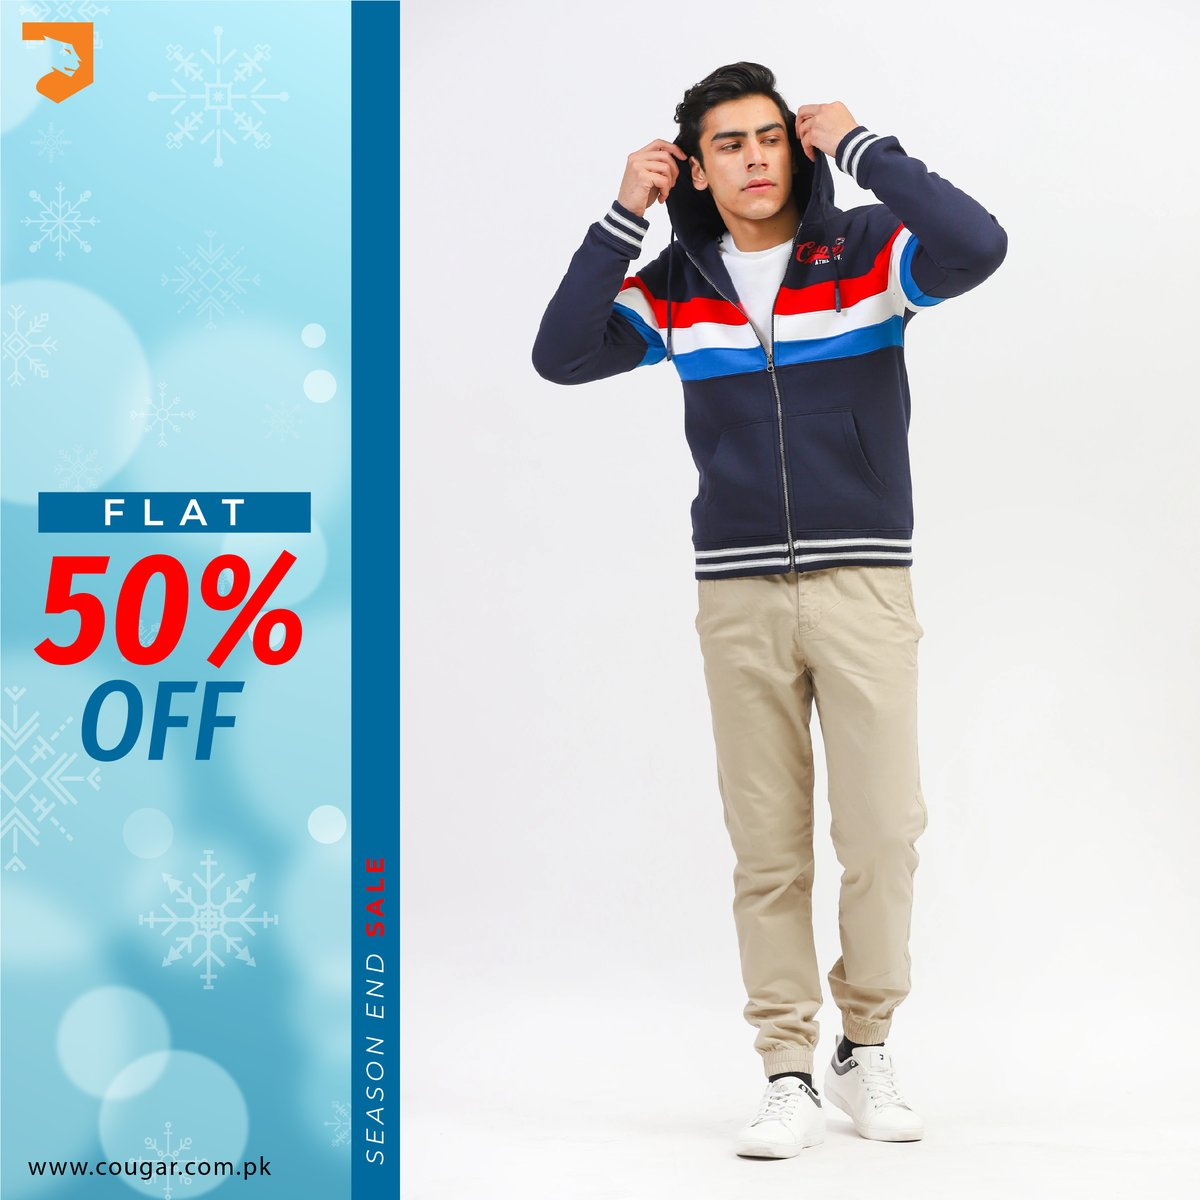 Season End Sale! FLAT 50% OFF on entire stock. For more details:    #cougarclothing #cougarcrew #jointhecrew #eoss #sale #hoodies #onlineshopping #karachi #sindh #punjab